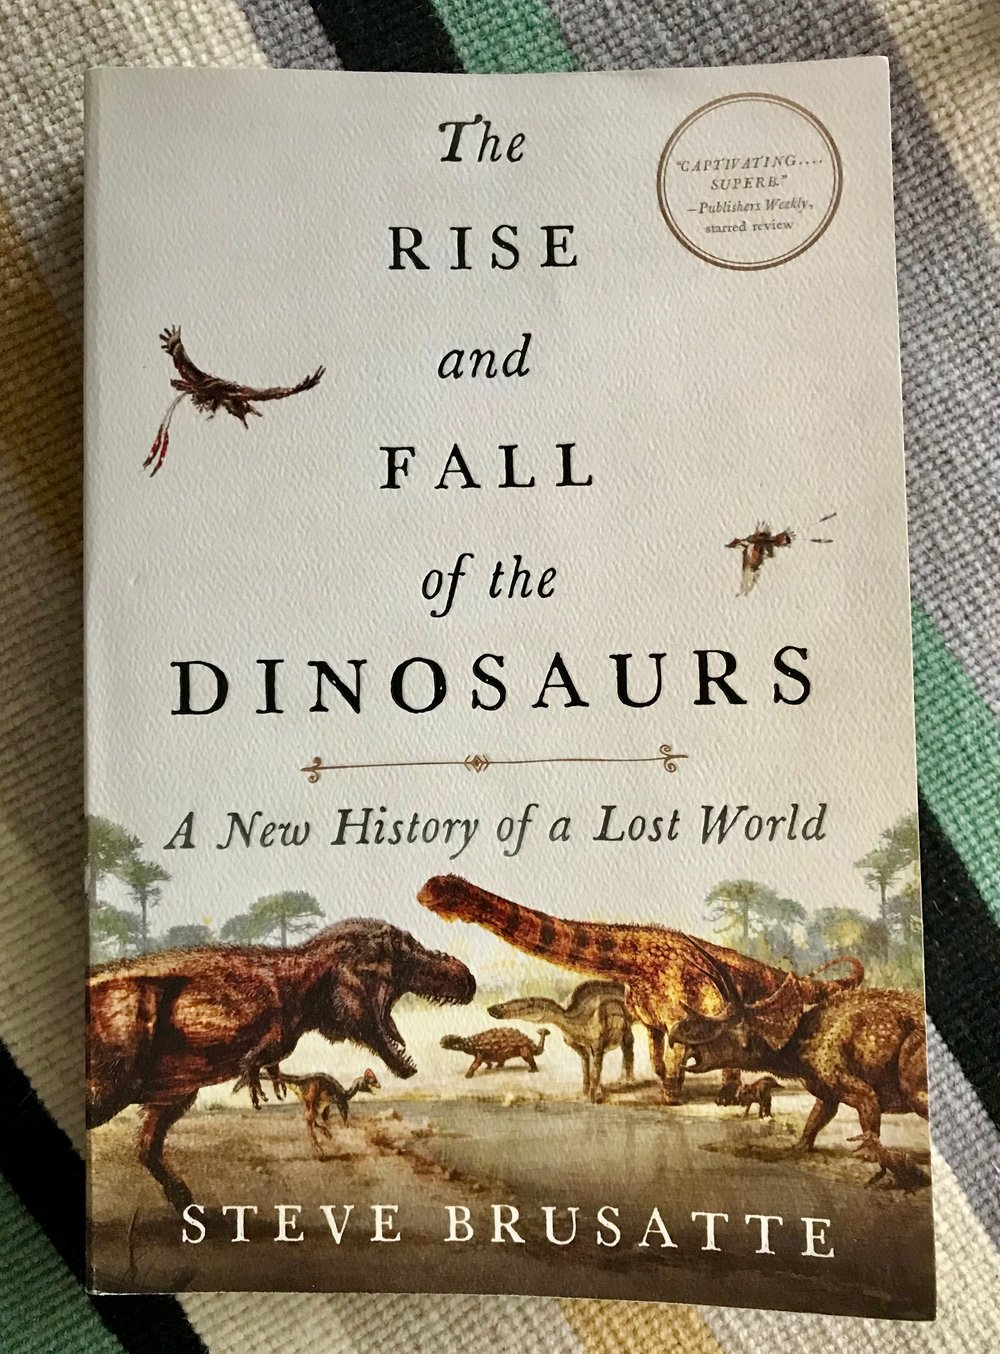 The rise and fall of the dinosaurs by steer brusatte